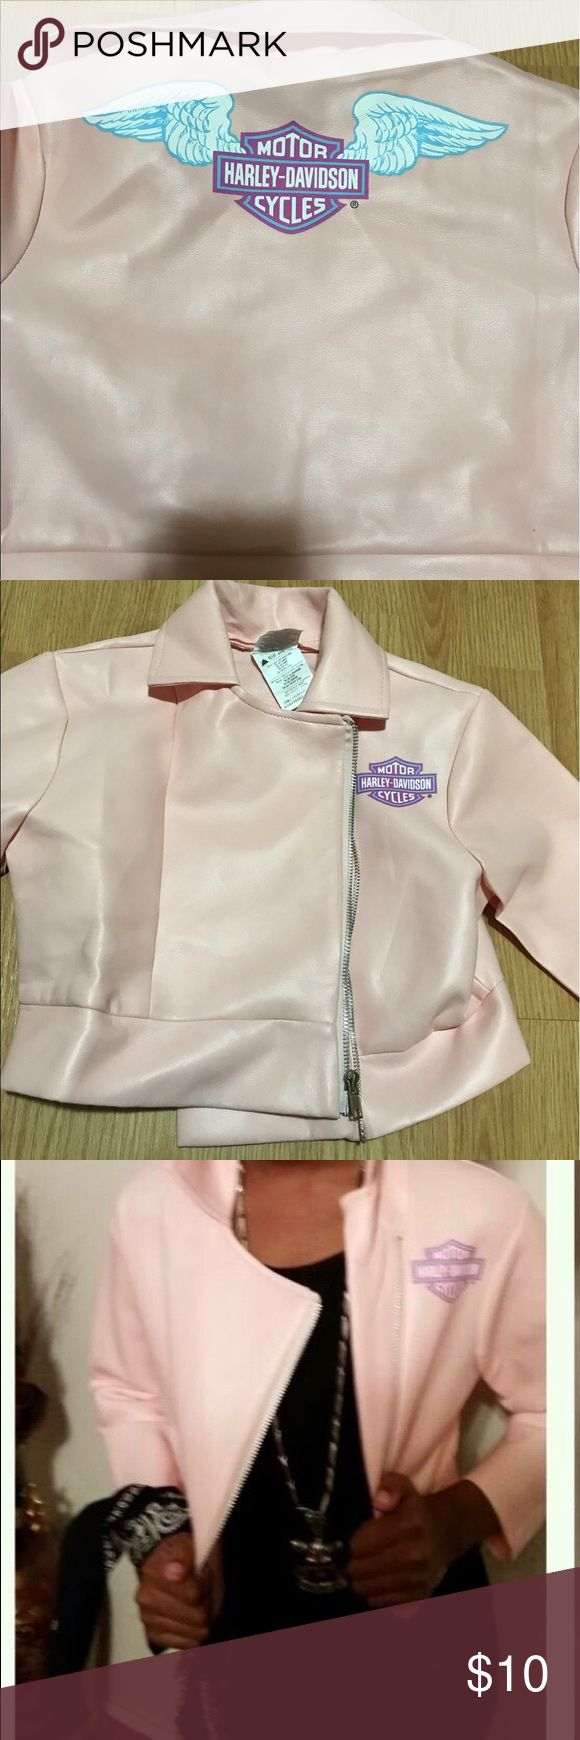 Girls Harley Davidson Jacket Gently used light pink jacket. This is NOT a real leather jacket. This was a part of my daughter's *HalloweenCostume*. Super cute tho. 😊 Harley-Davidson Jackets & Coats